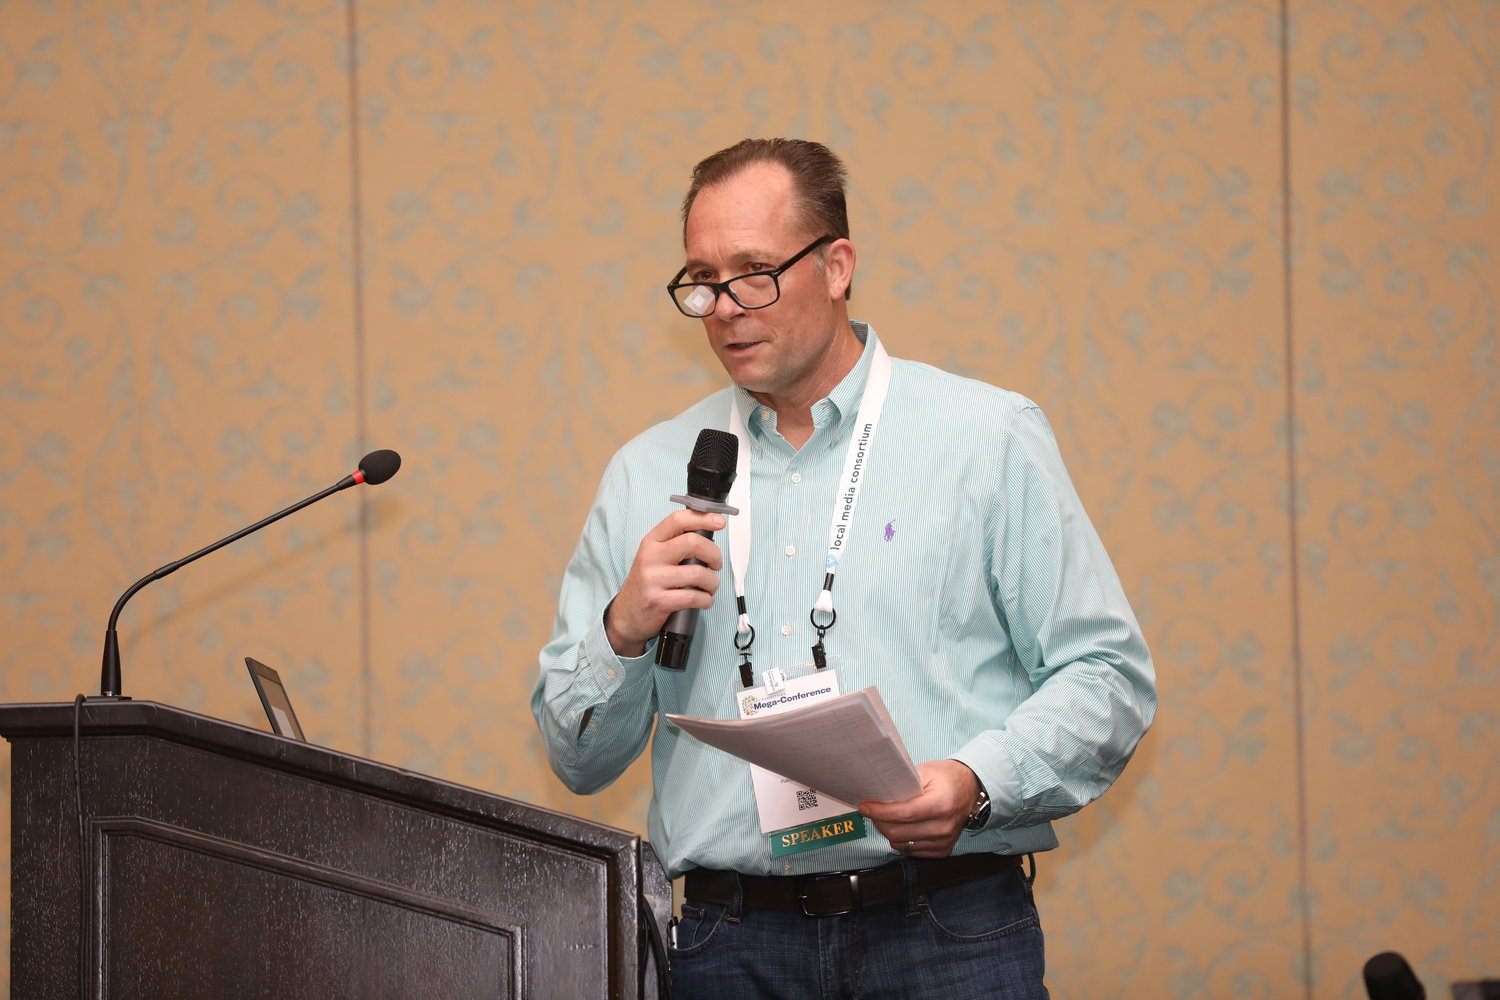 Pat Dorsey, publisher of the Austin American-Statesman, at the Mega-Conference. (Photo by Bob Booth)